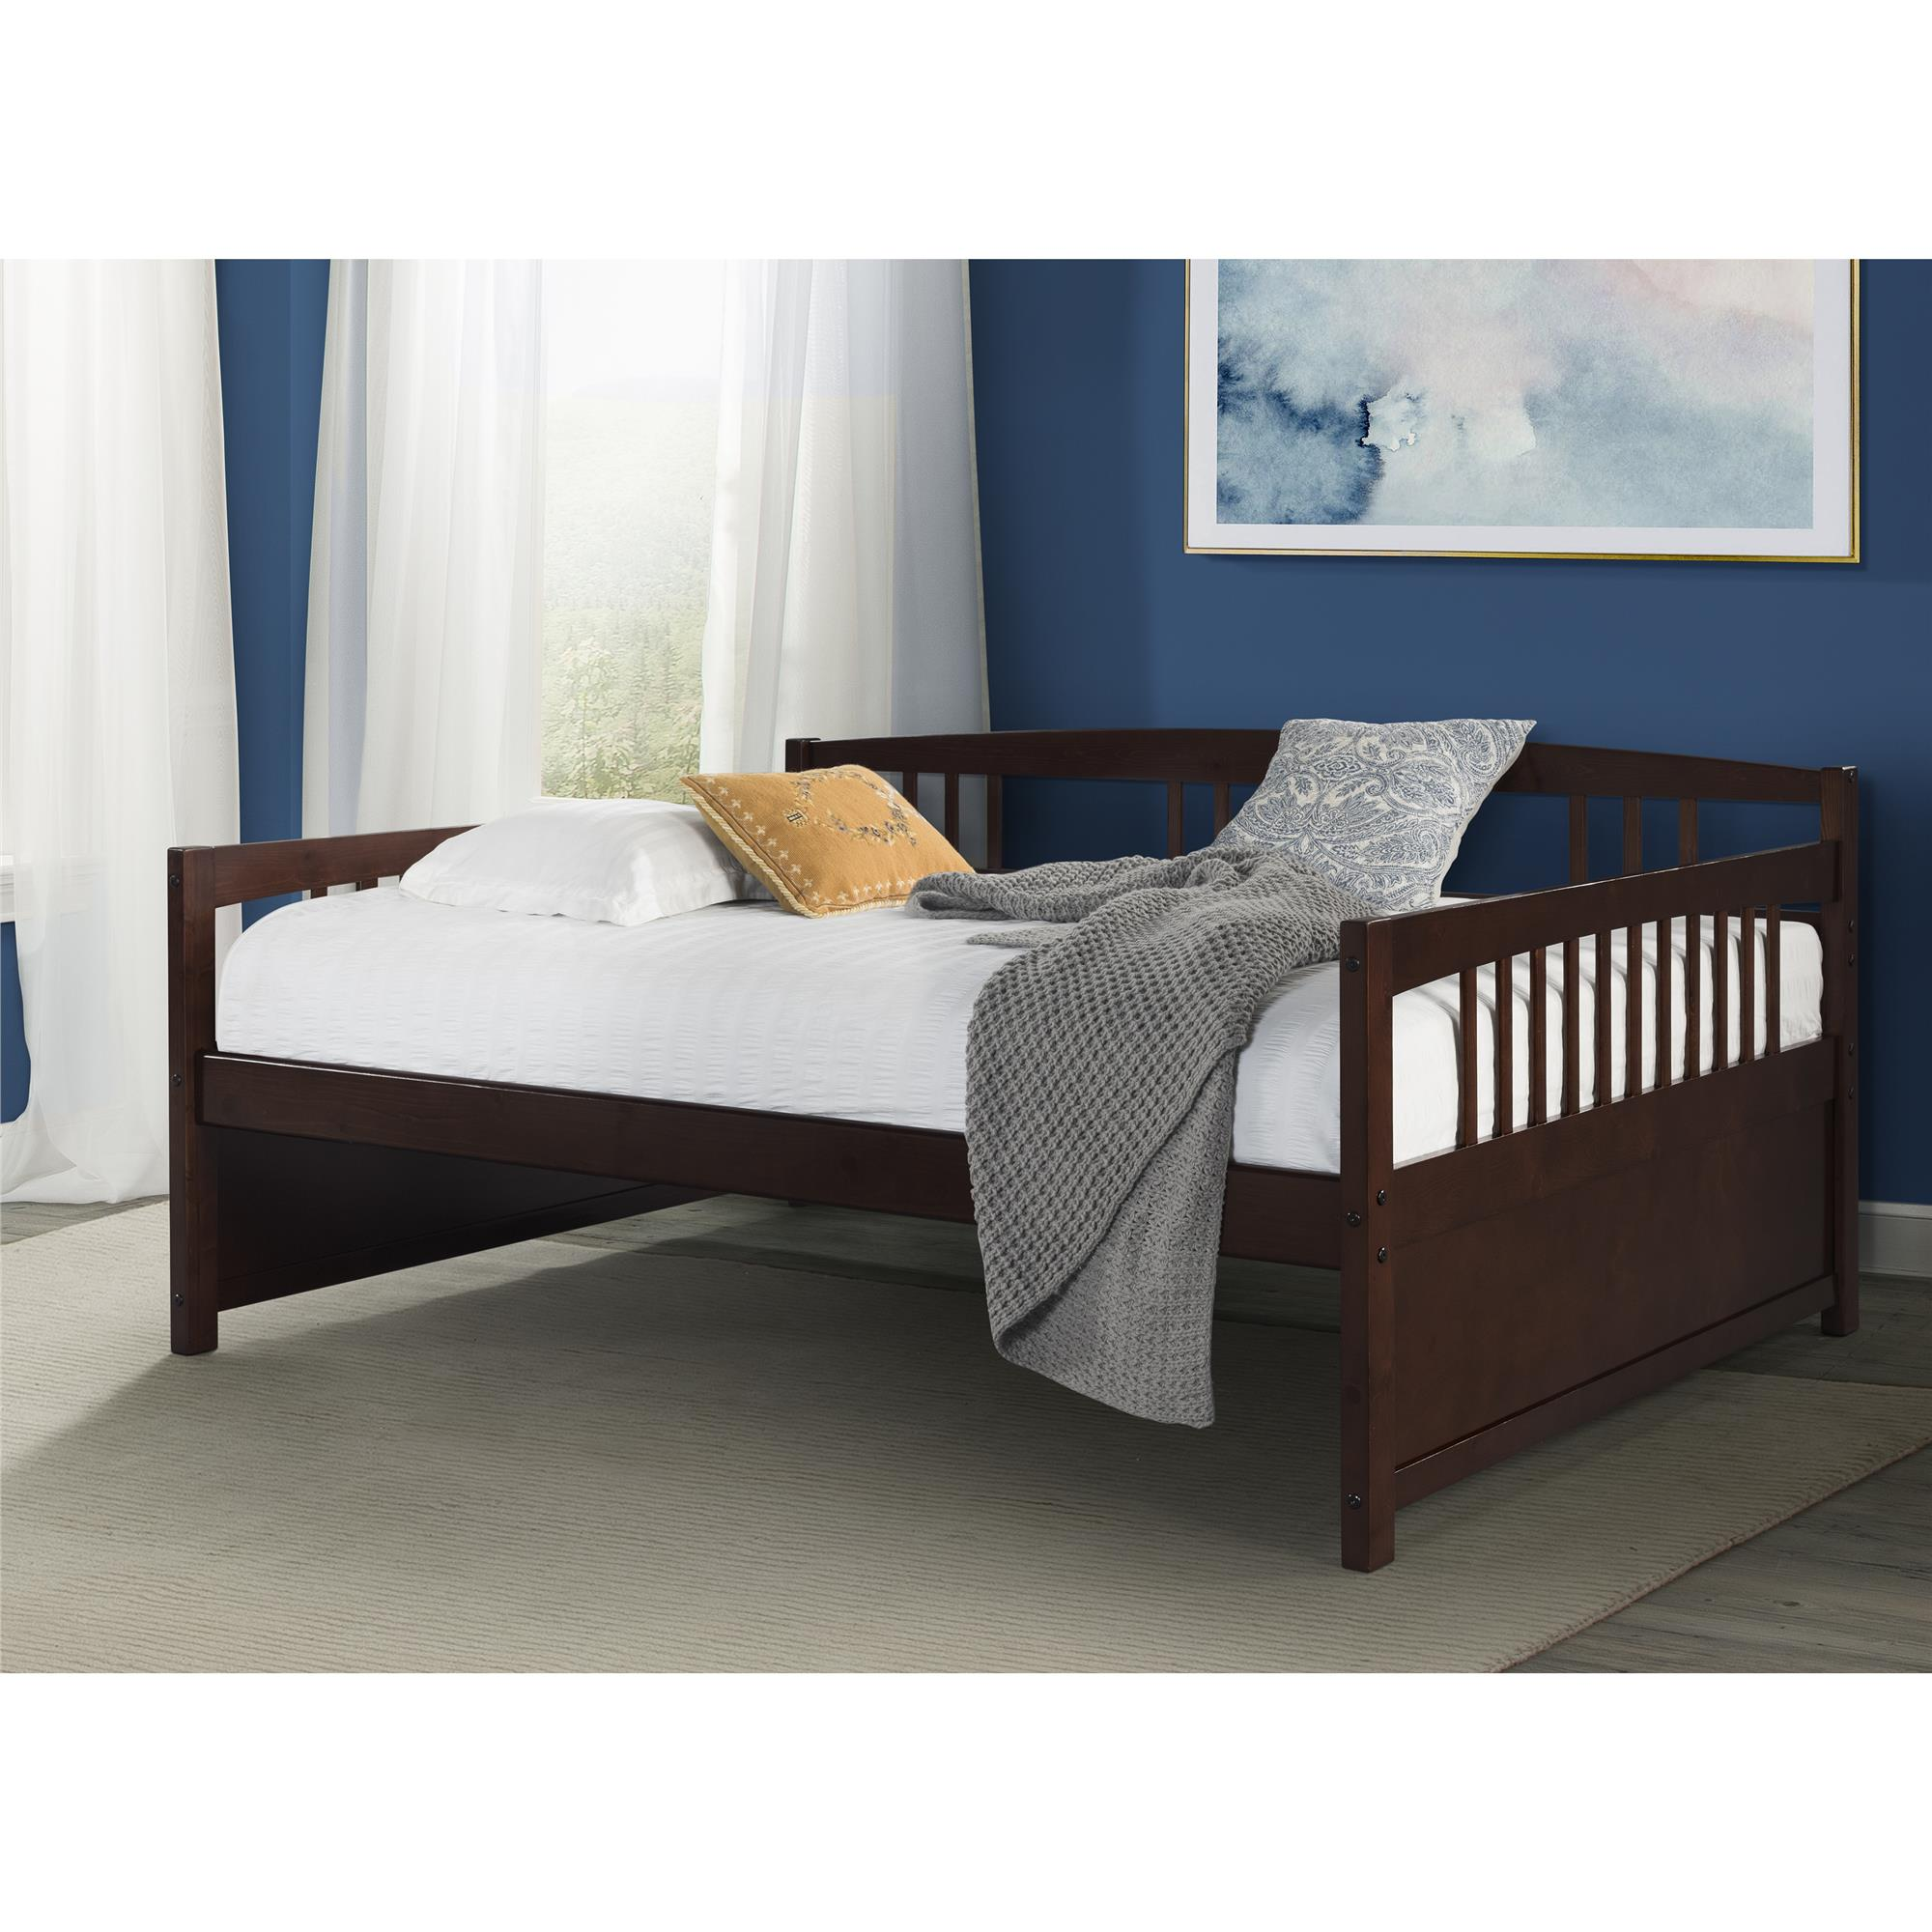 Dorel Living Morgan Full Day Bed, Espresso by Dorel Asia